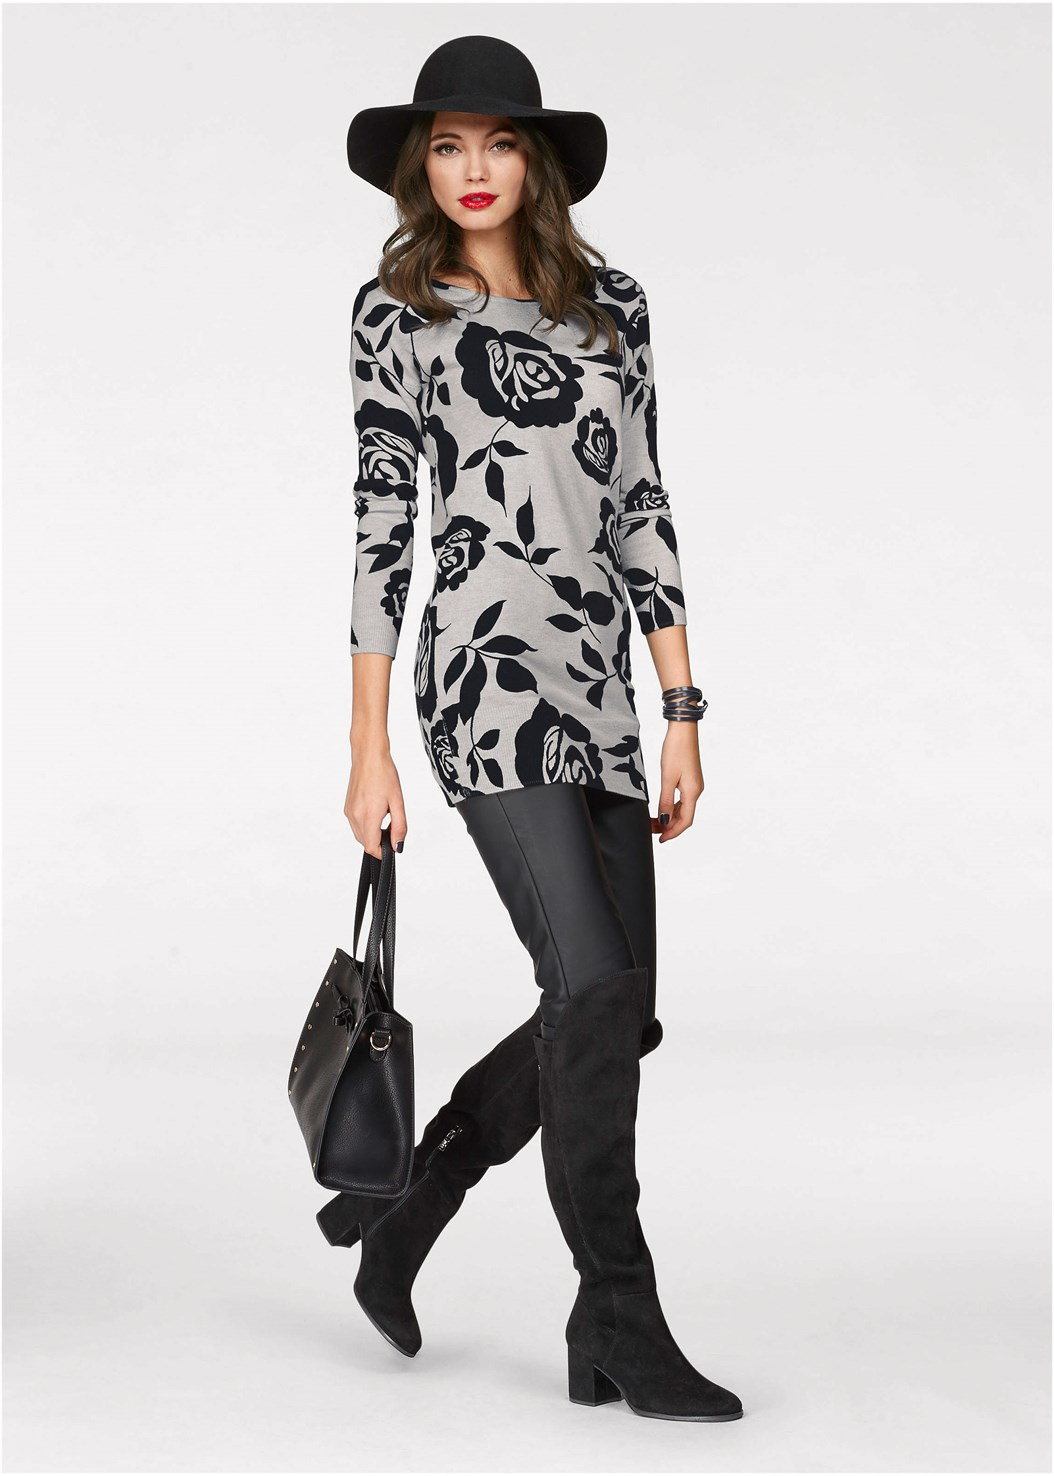 Floral Tunic Sweater,Faux Leather Pants,Cut Out Detail Boots,Rhinestone Fringe Earrings